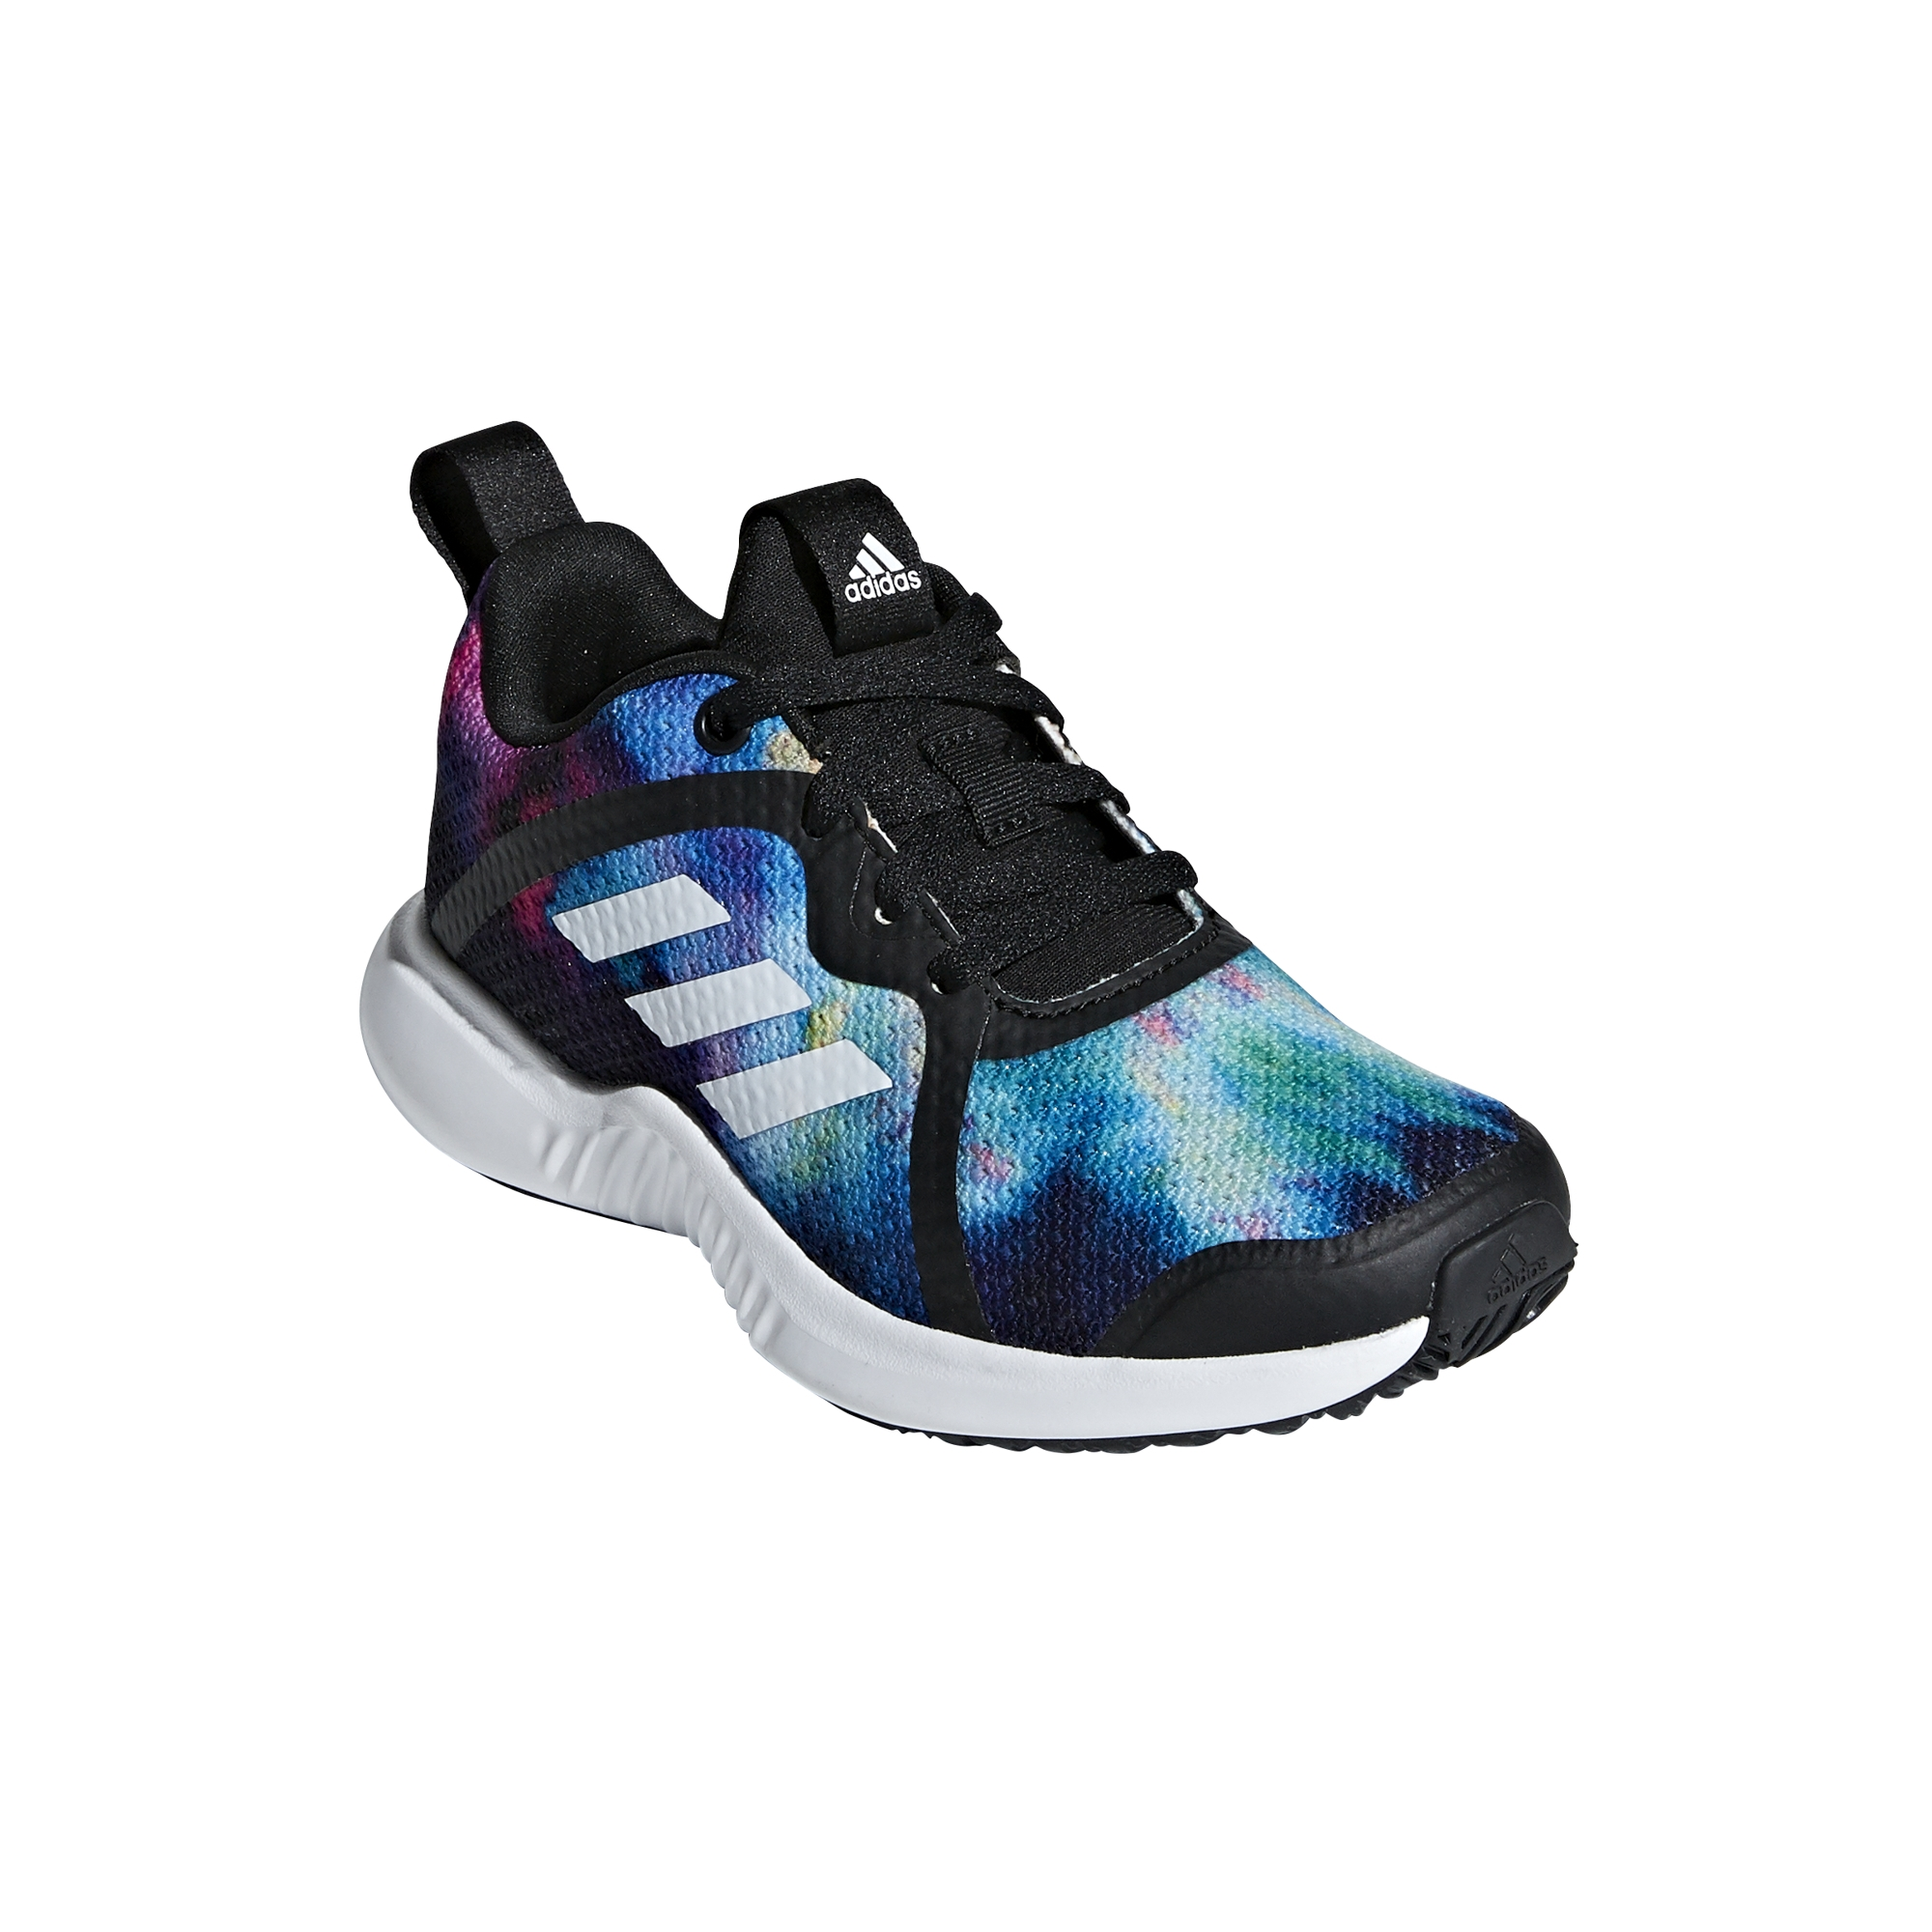 finest selection 44506 132e4 Chaussures kid adidas FortaRun X